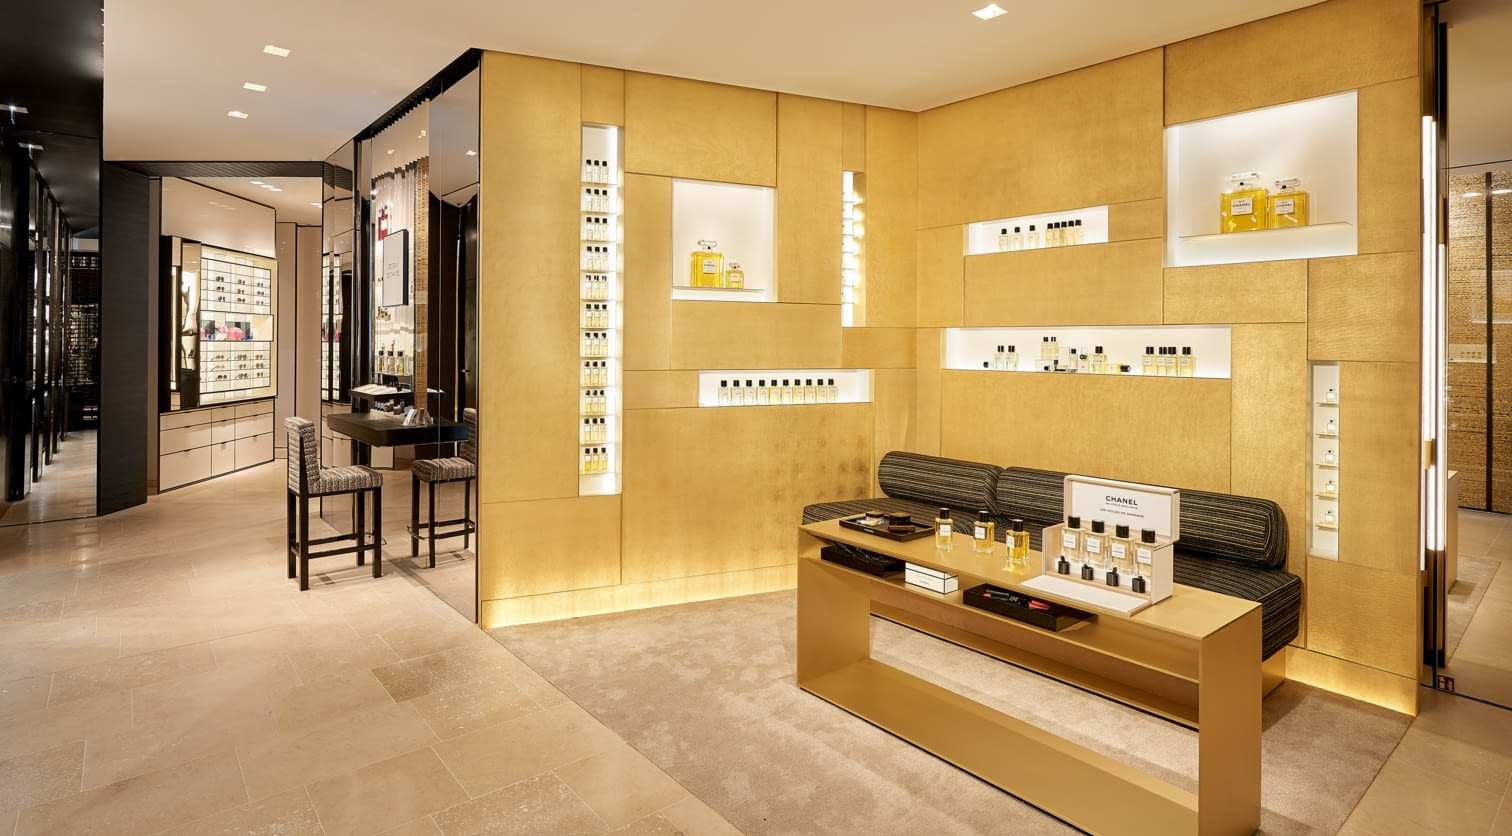 CHANEL boutique - 19, rue Cambon ©Olivier Saillant (30).jpg